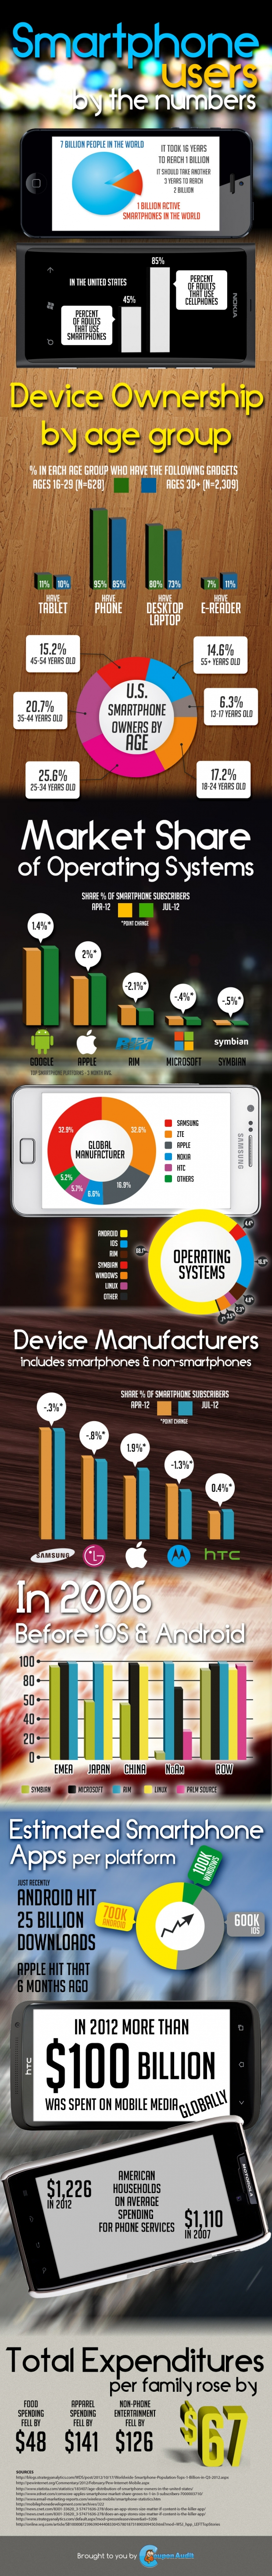 Smartphone-users-by-the-number-smart4-620x5873